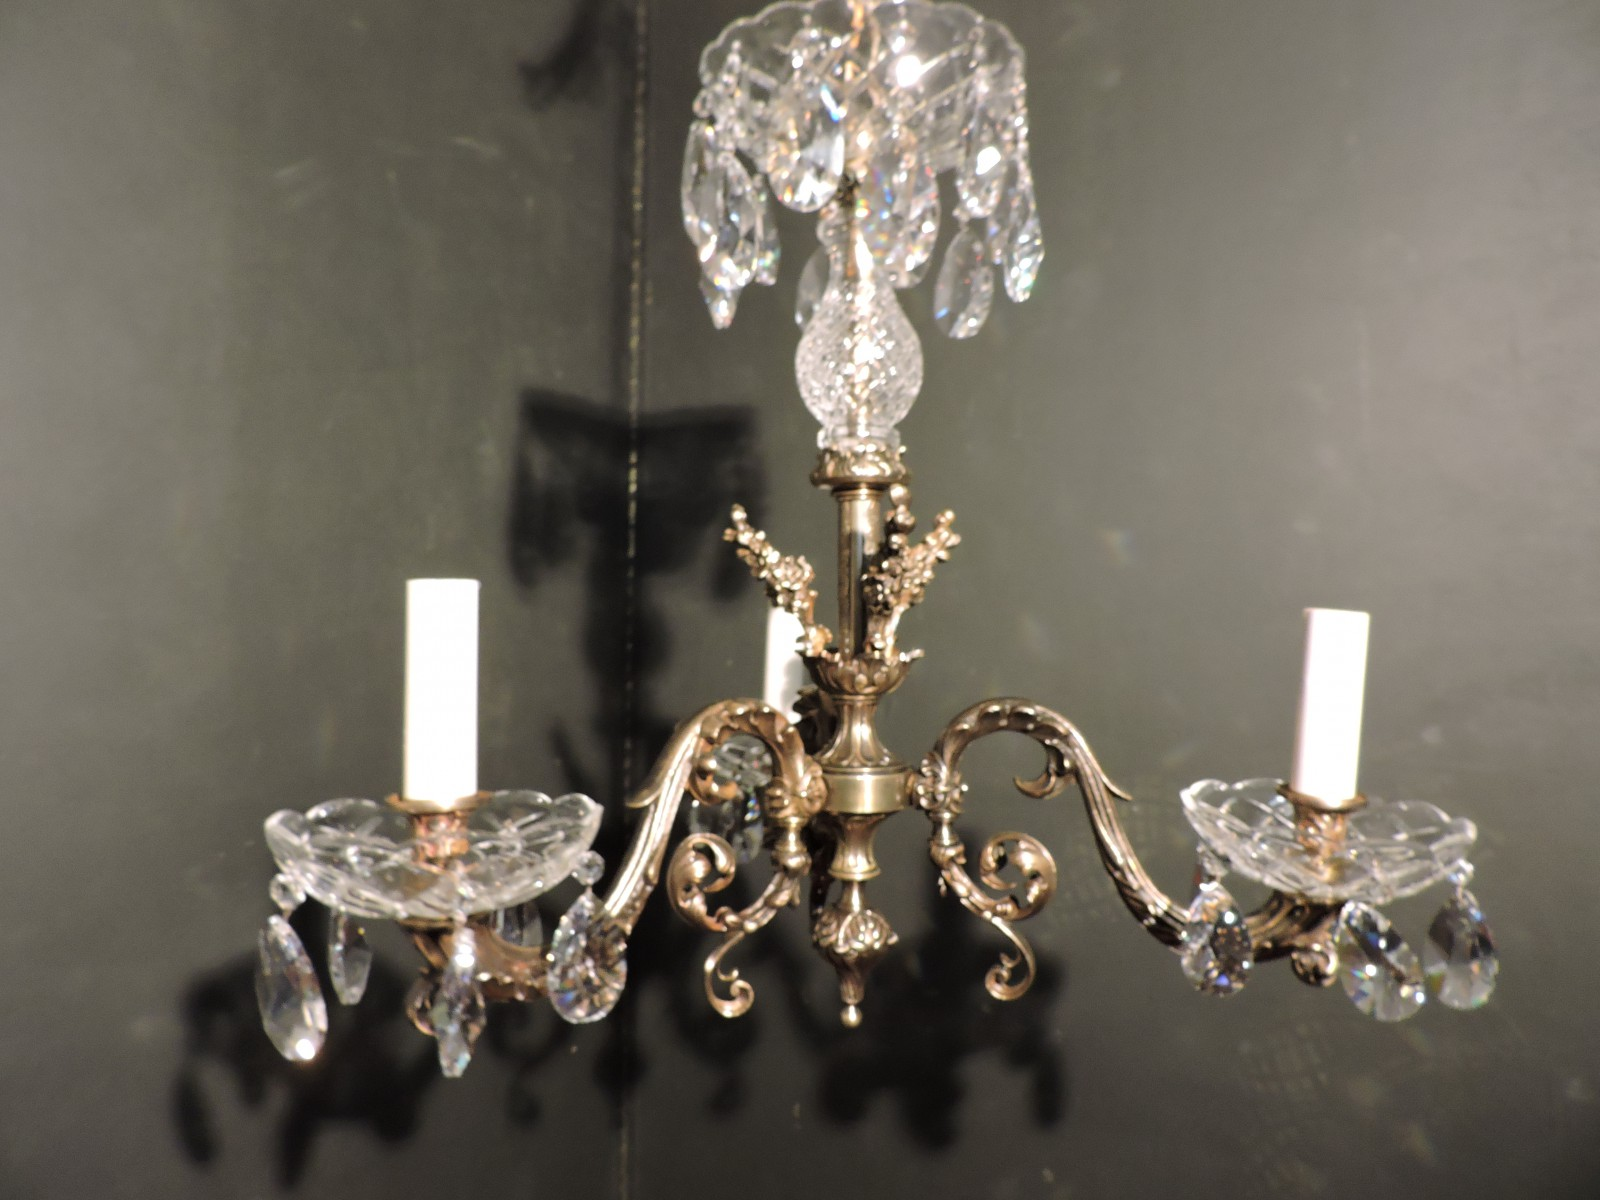 French Bronze And Crystal Chandelier - Orleans Antique